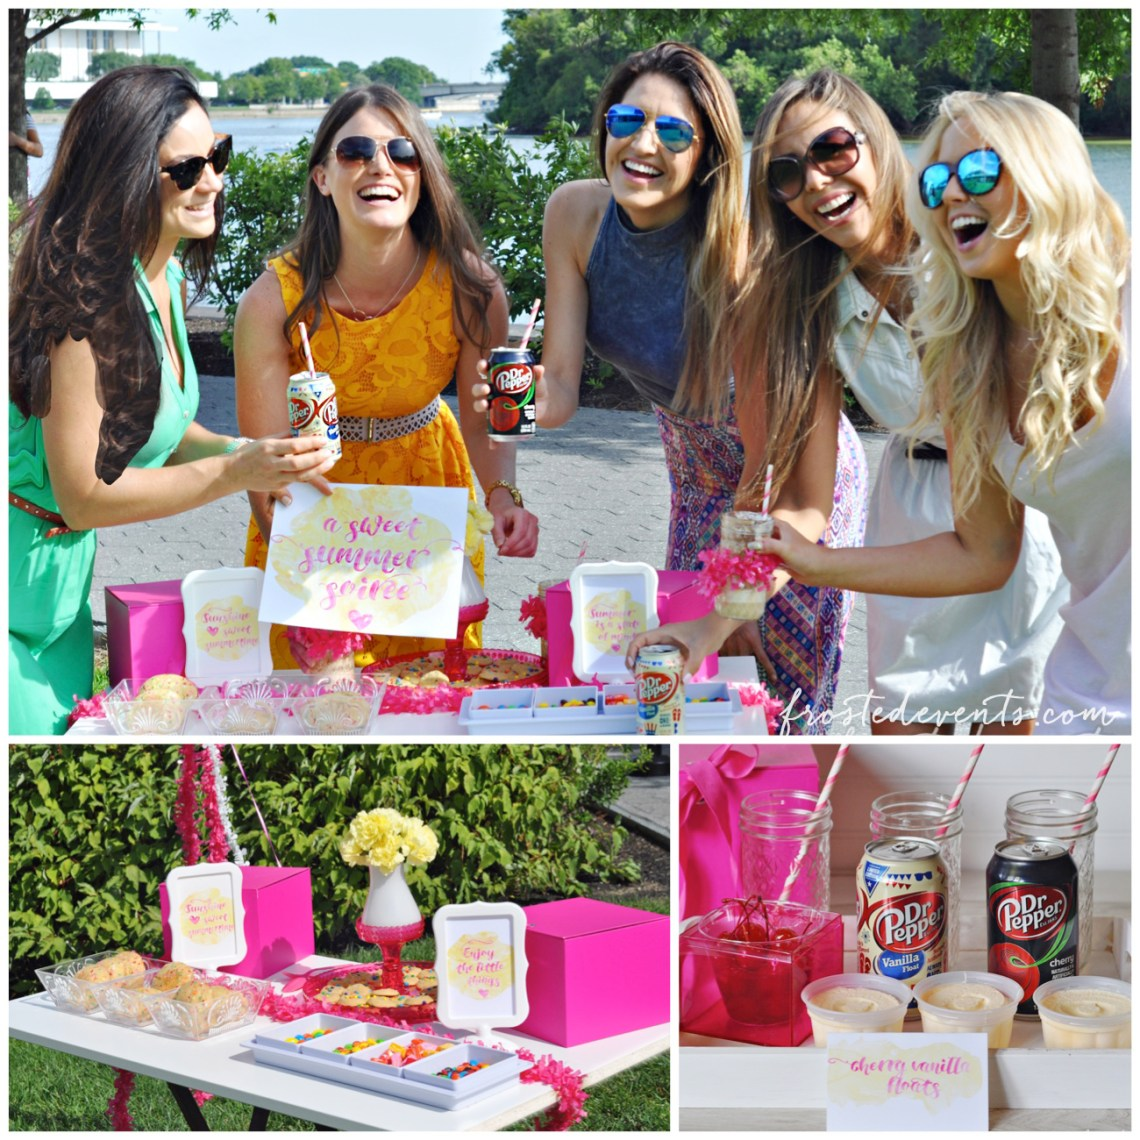 Best Summer Ever! A Sweet End of Summer Soiree #ShareFunshine #ad Summer Party Ideas